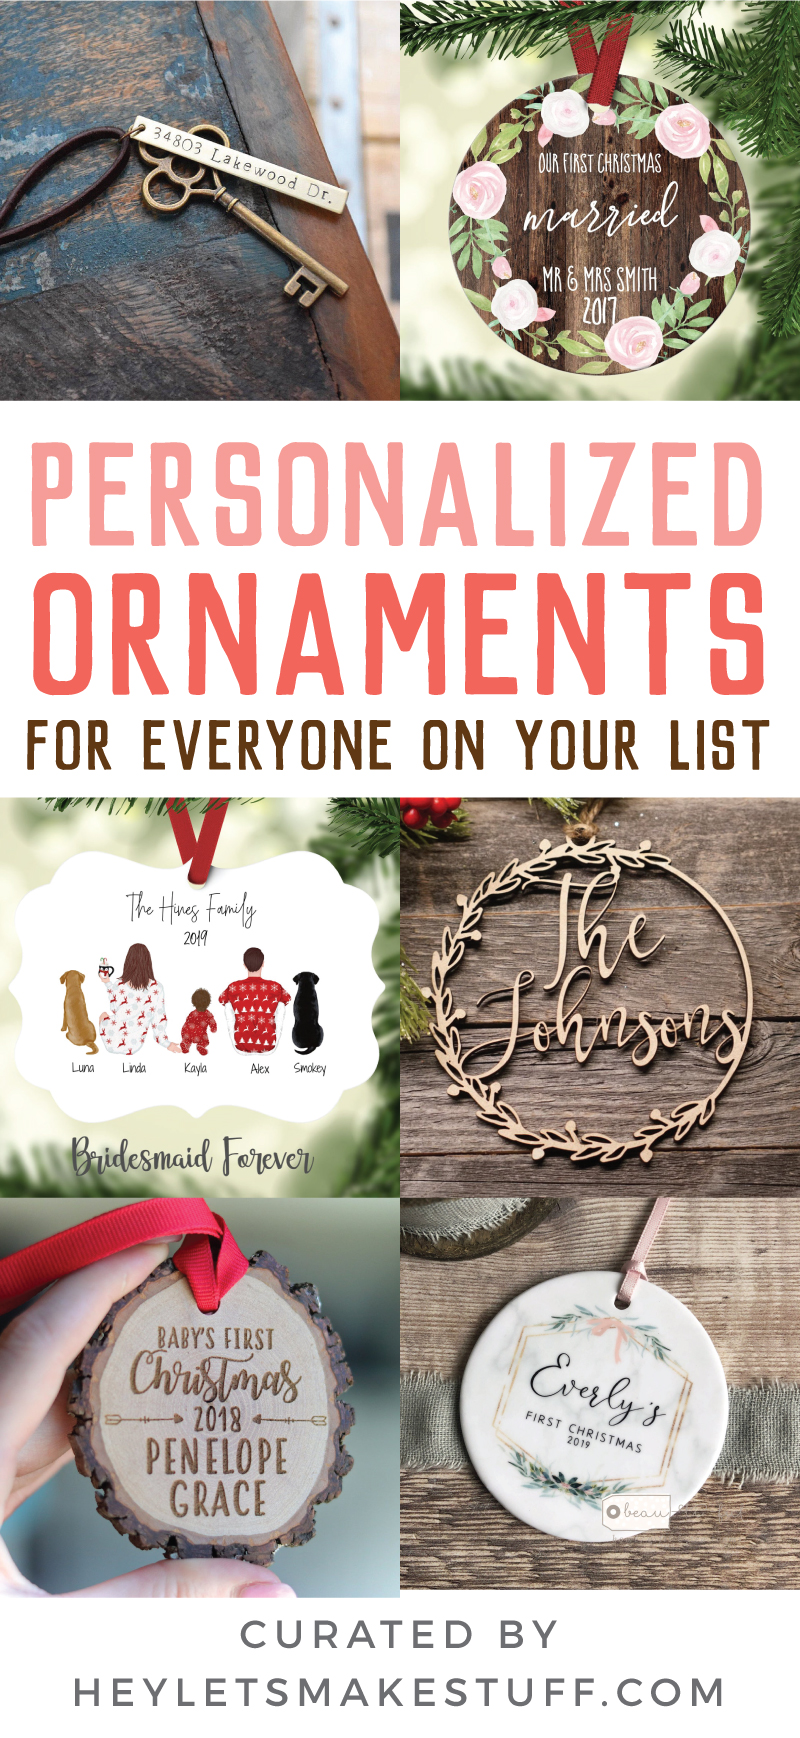 Trim your tree and deck your halls with these beautiful personalized ornaments from Etsy! These ornaments will be cherished for years to come and make great Christmas gifts for family members, new parents, teachers, kids, loved ones, and more.  via @heyletsmakestuf